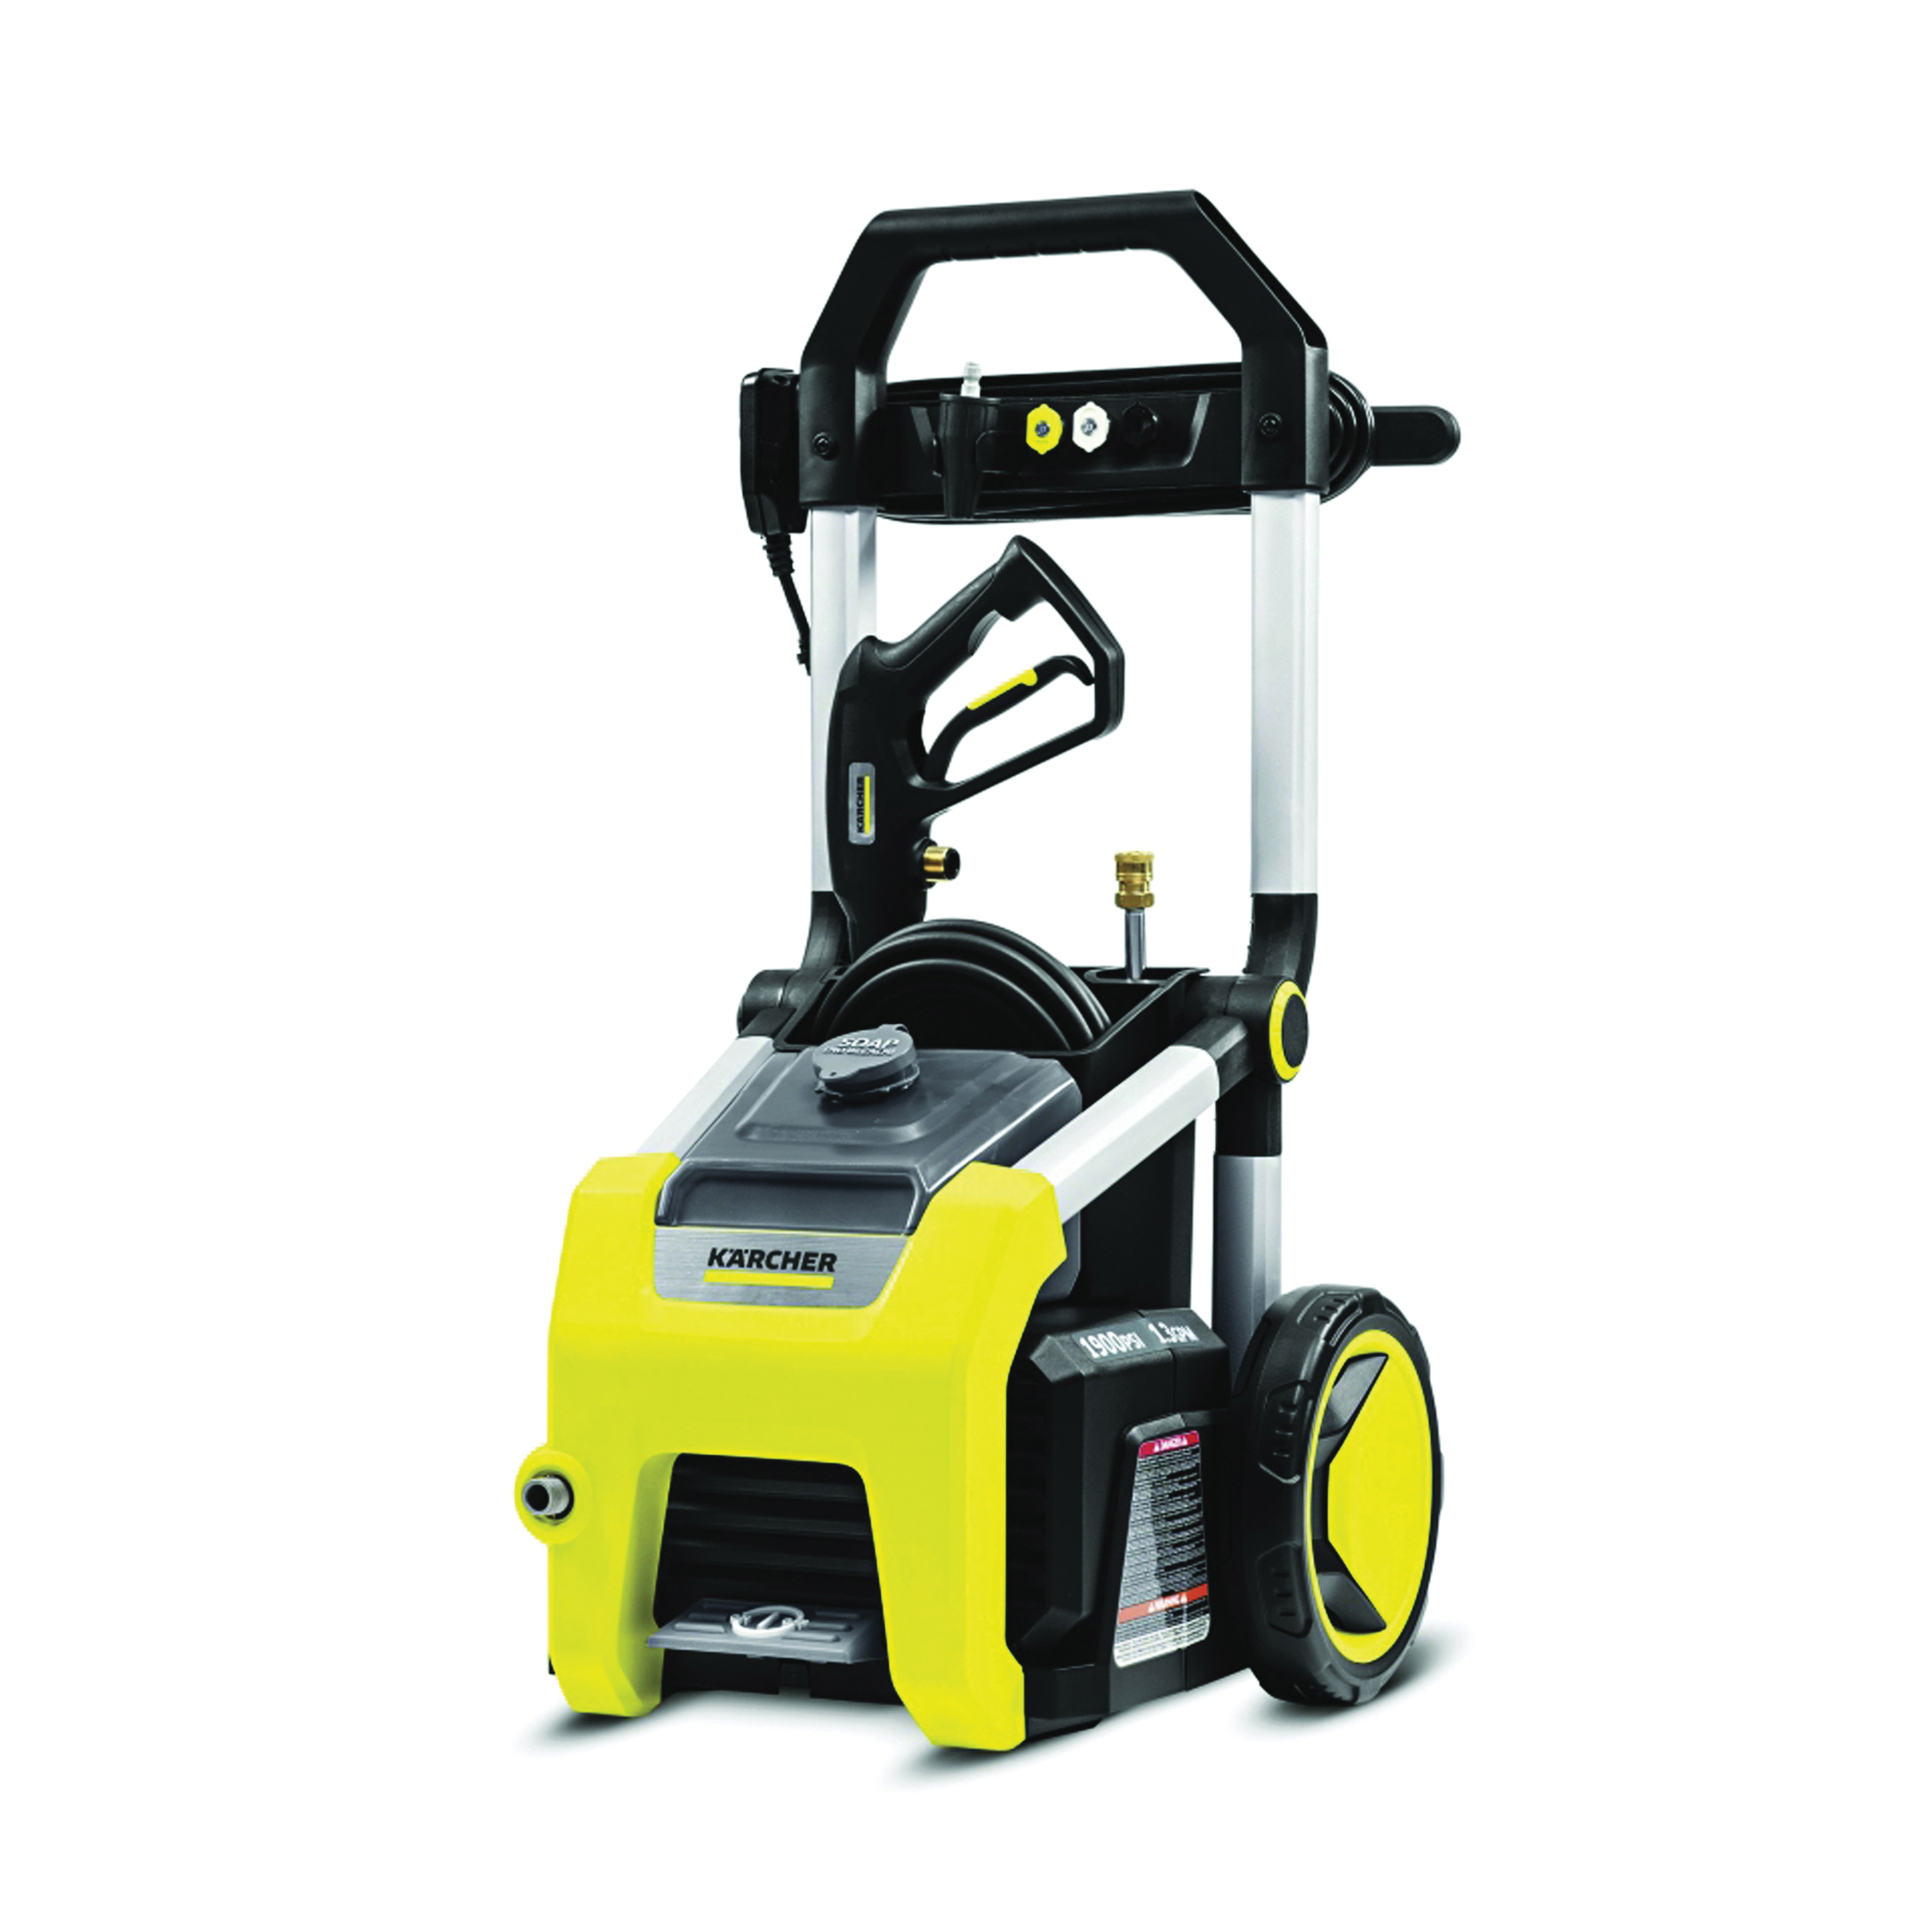 Picture of Karcher K1900 Pressure Washer, 13 A, 1900 psi Operating, 1.3 gpm, Spray Nozzle, 25 ft L Hose, Black/Yellow